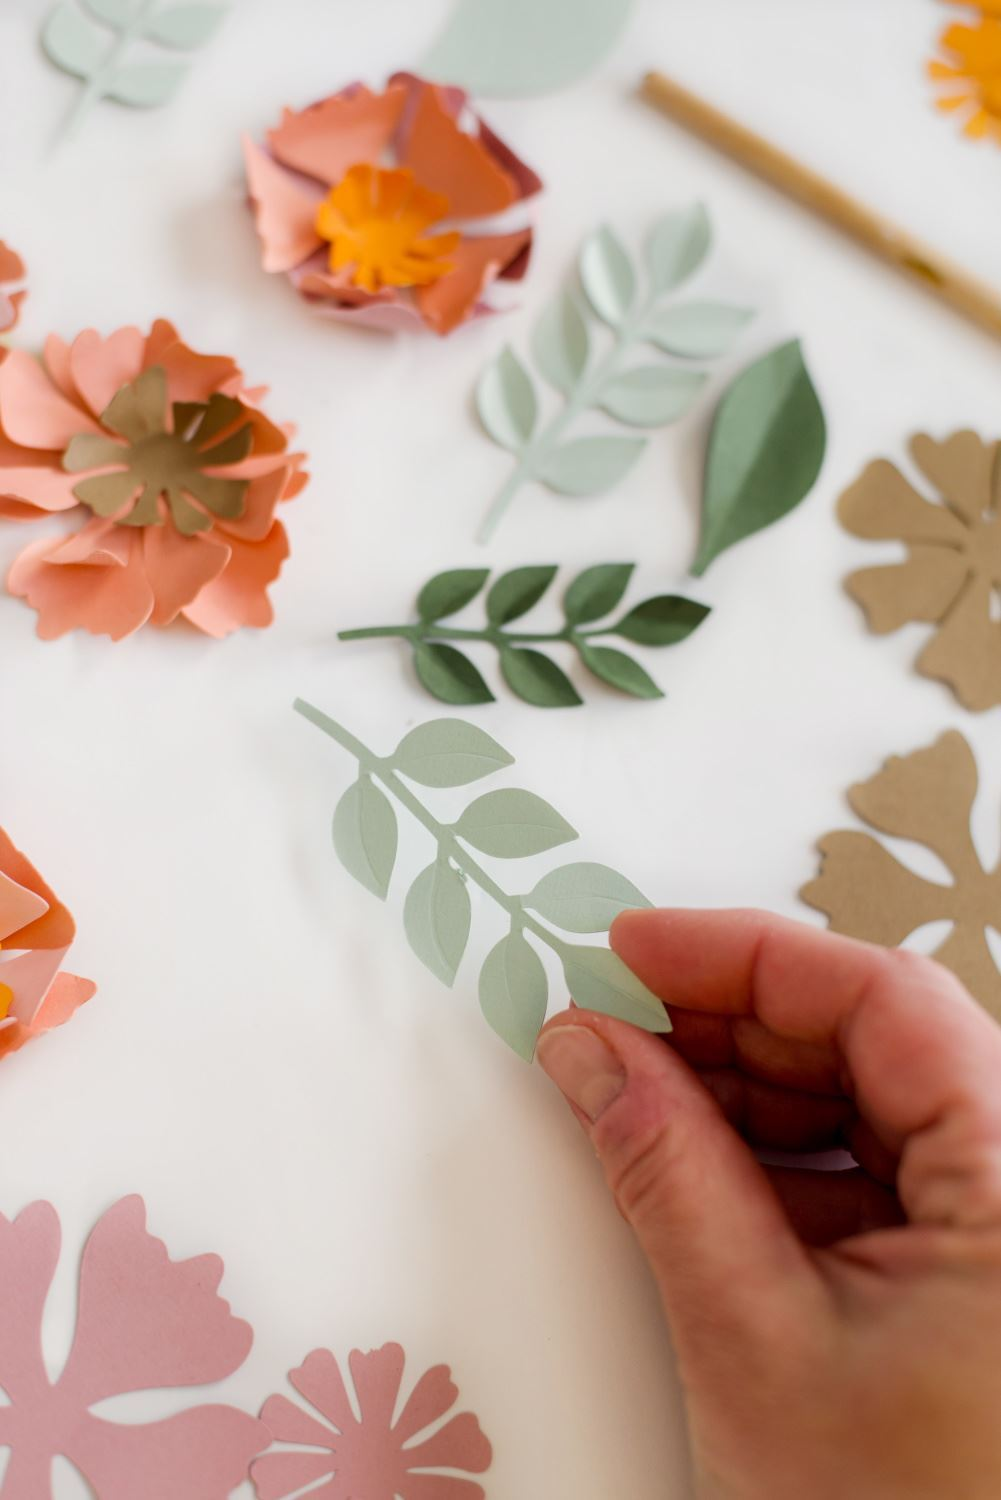 Crease and fold edges of leaves